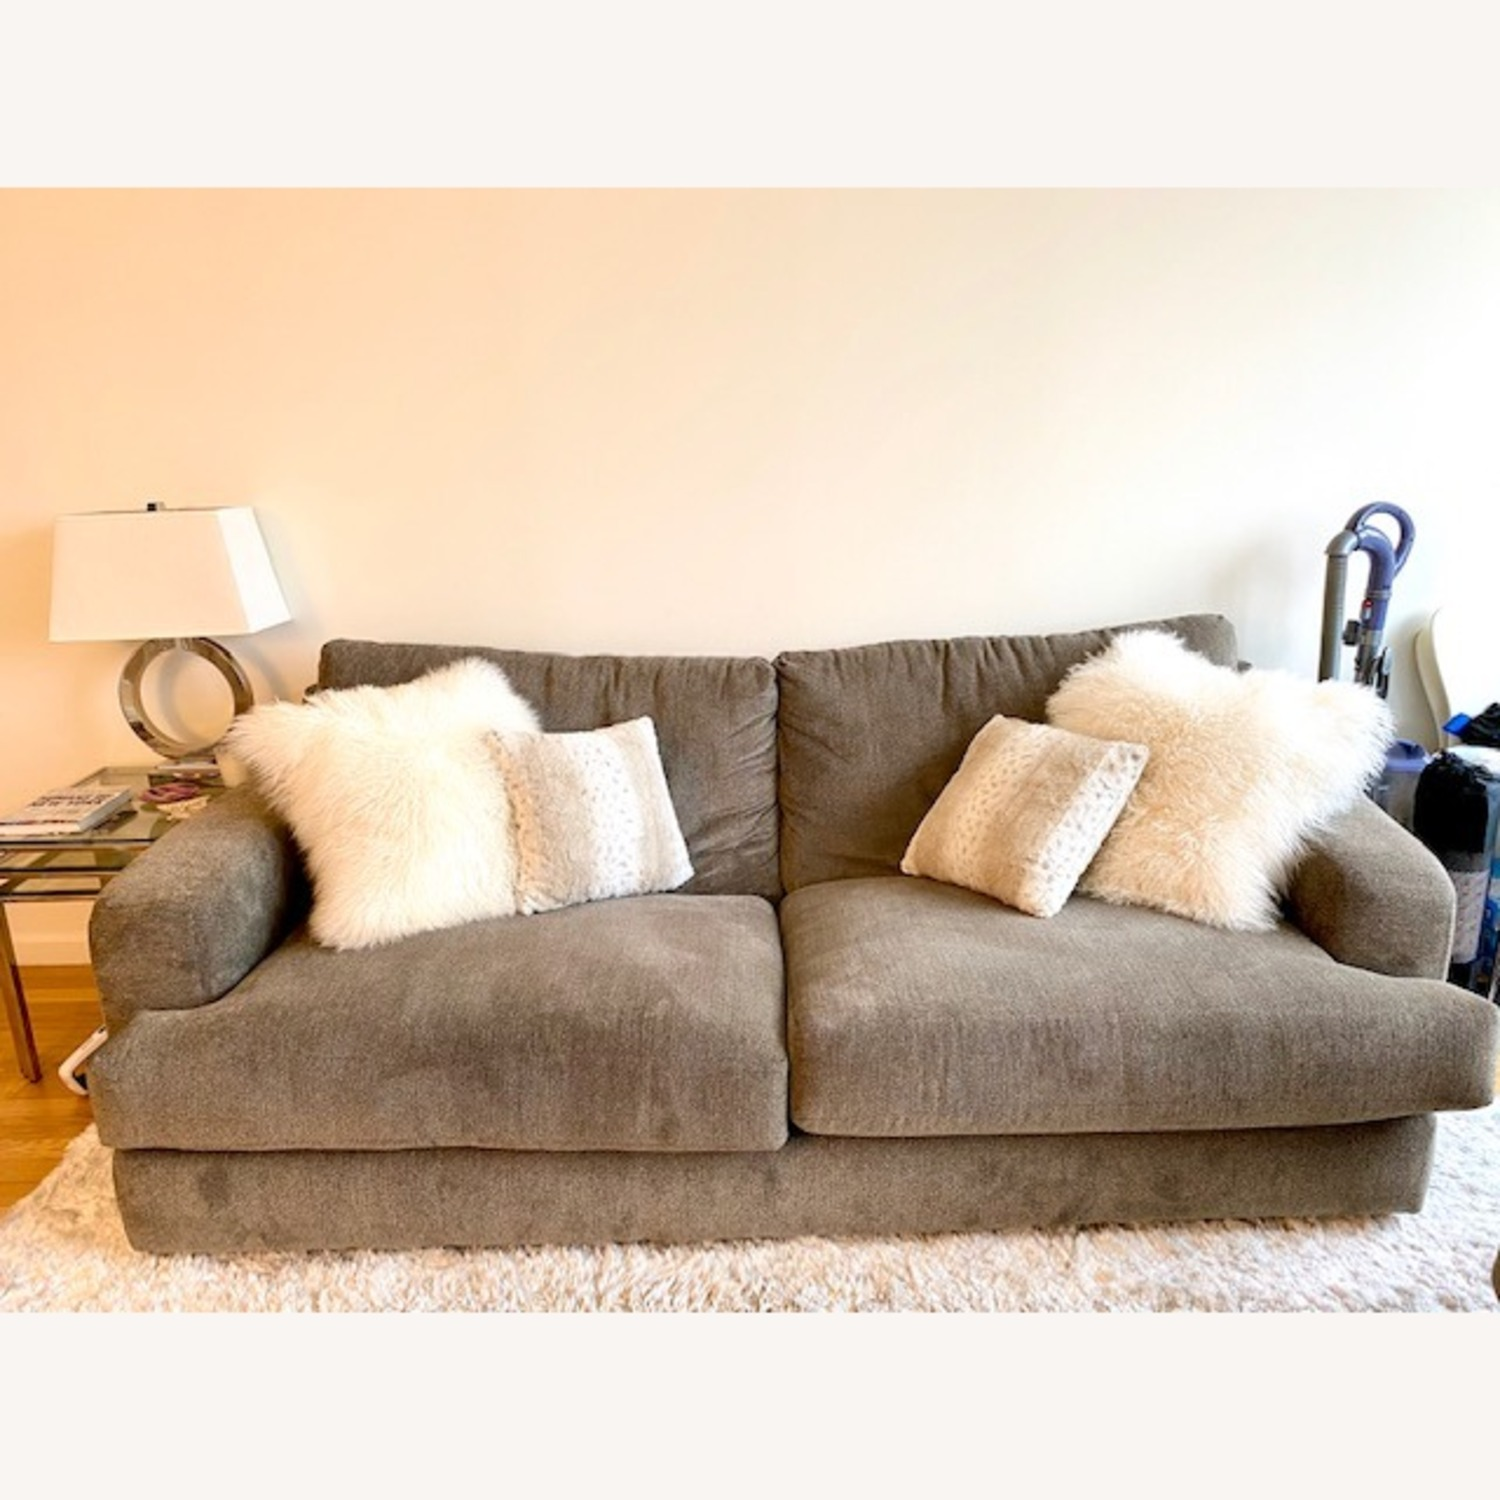 Raymour & Flanigan Grey 2 Seater Sofa - image-1